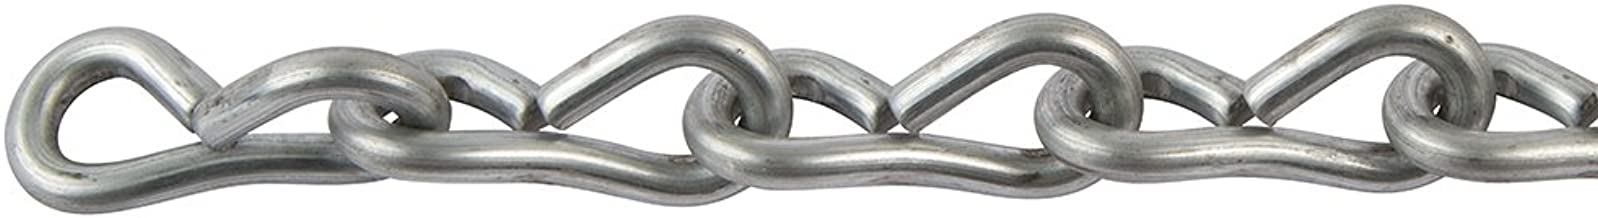 Perfection Chain Products 35011 #12 Single Jack Chain, Bright Galvanized, 50 FT Carton